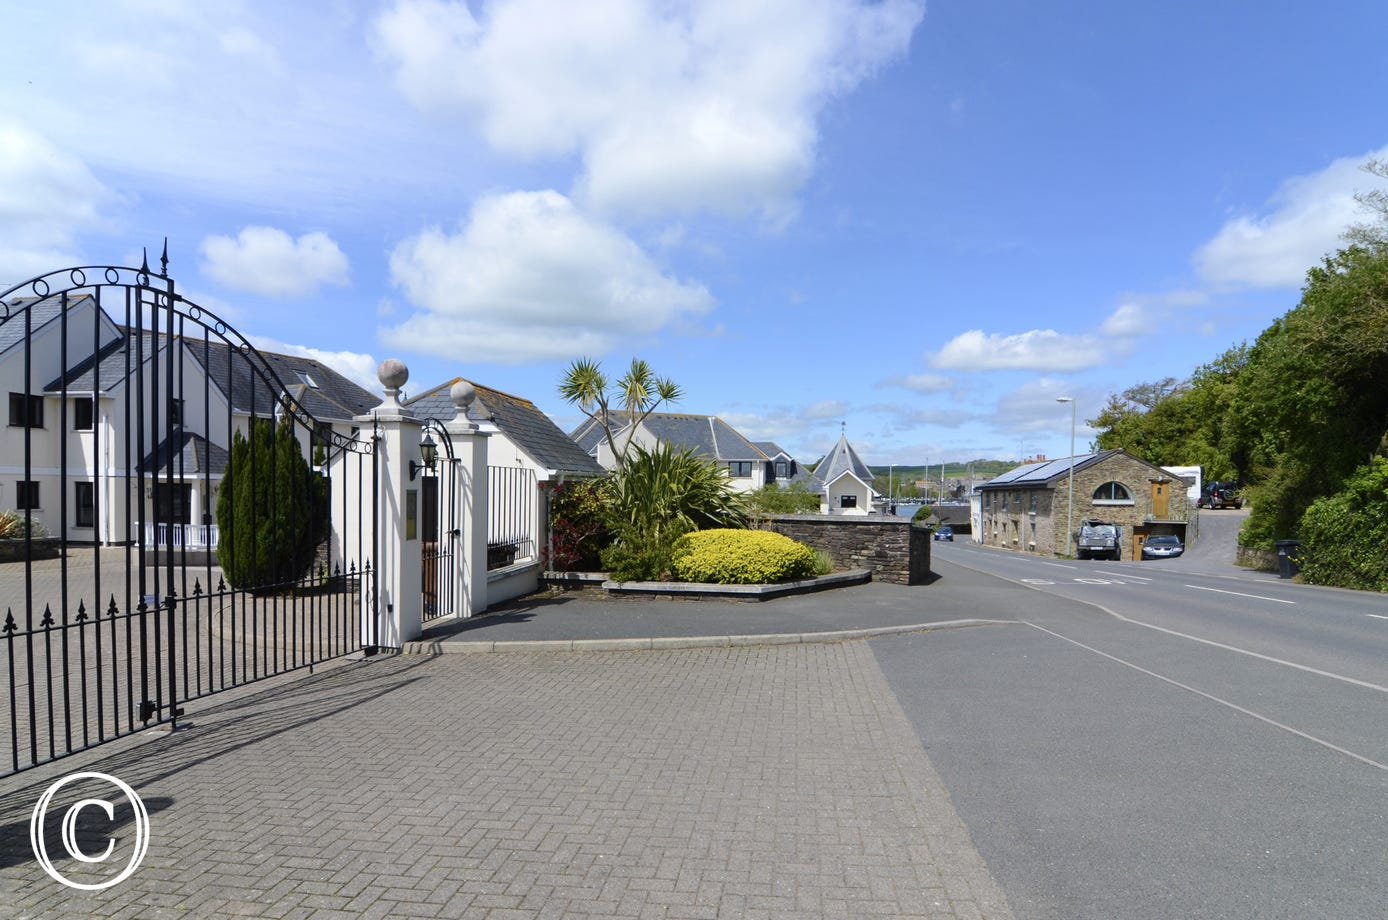 Secure gated entrance to self-catering apartments in Kingsbridge with private parking and estuary views